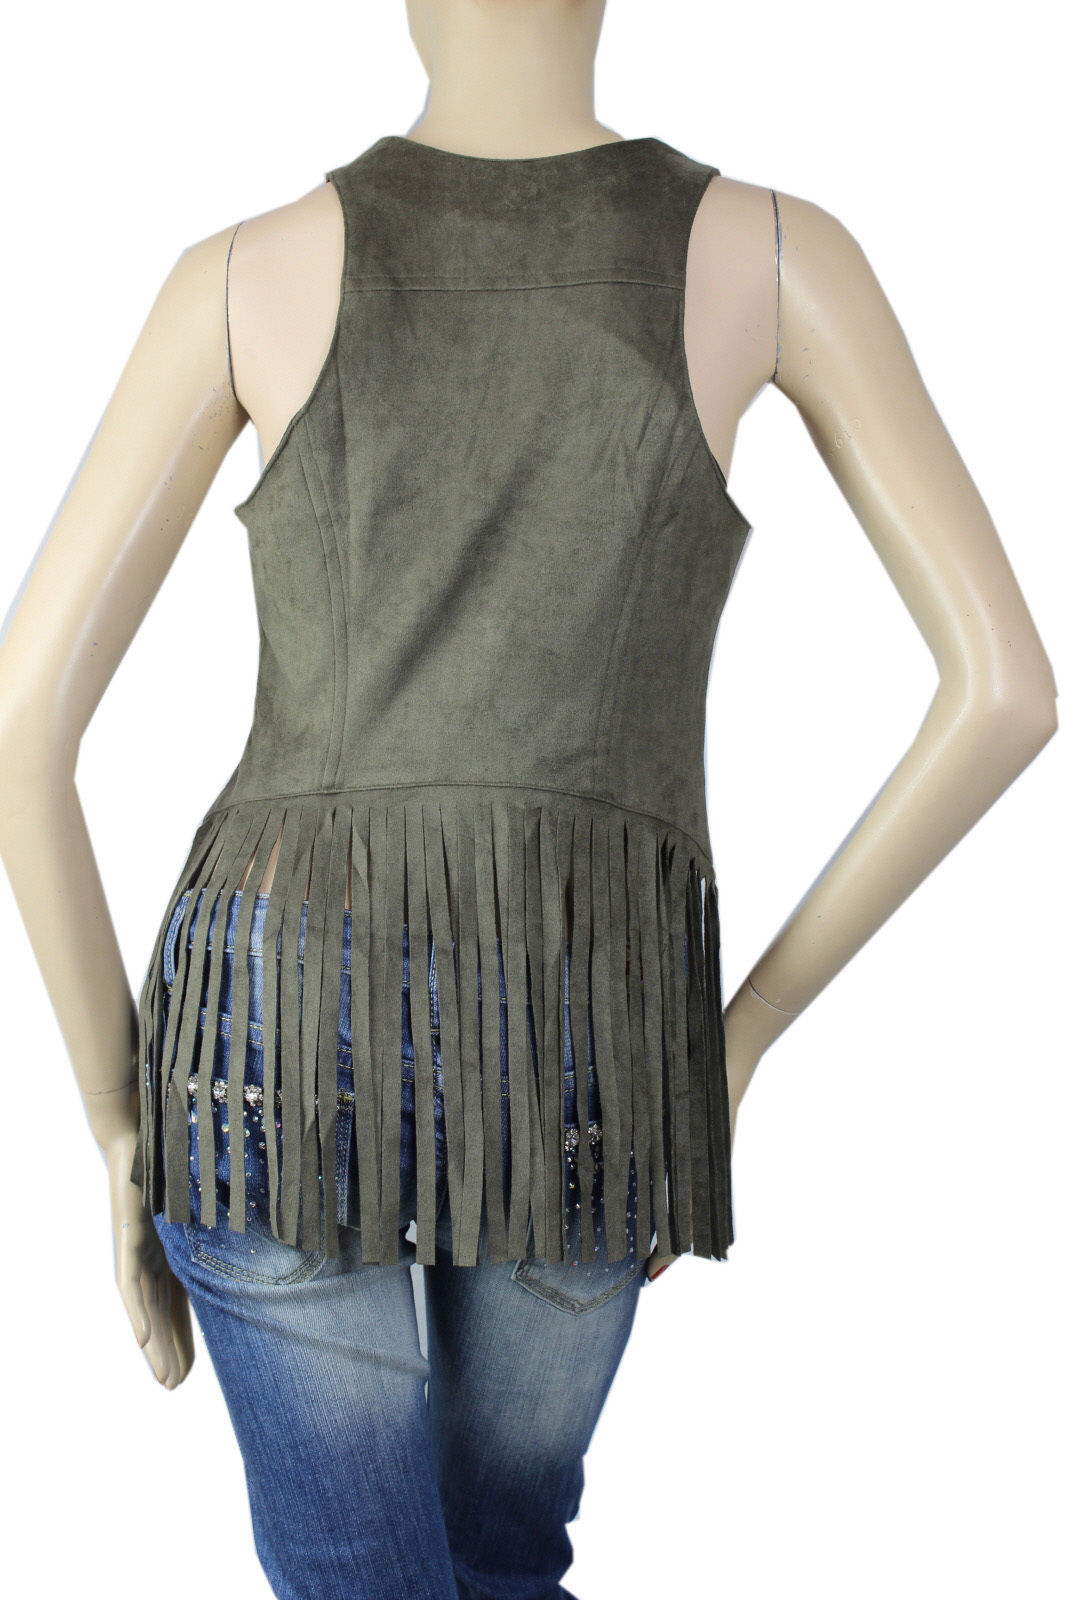 Sexy Fringe Suede Tank Top Vest w/ Zipper, Lining Club Dance Casual Shirts SML